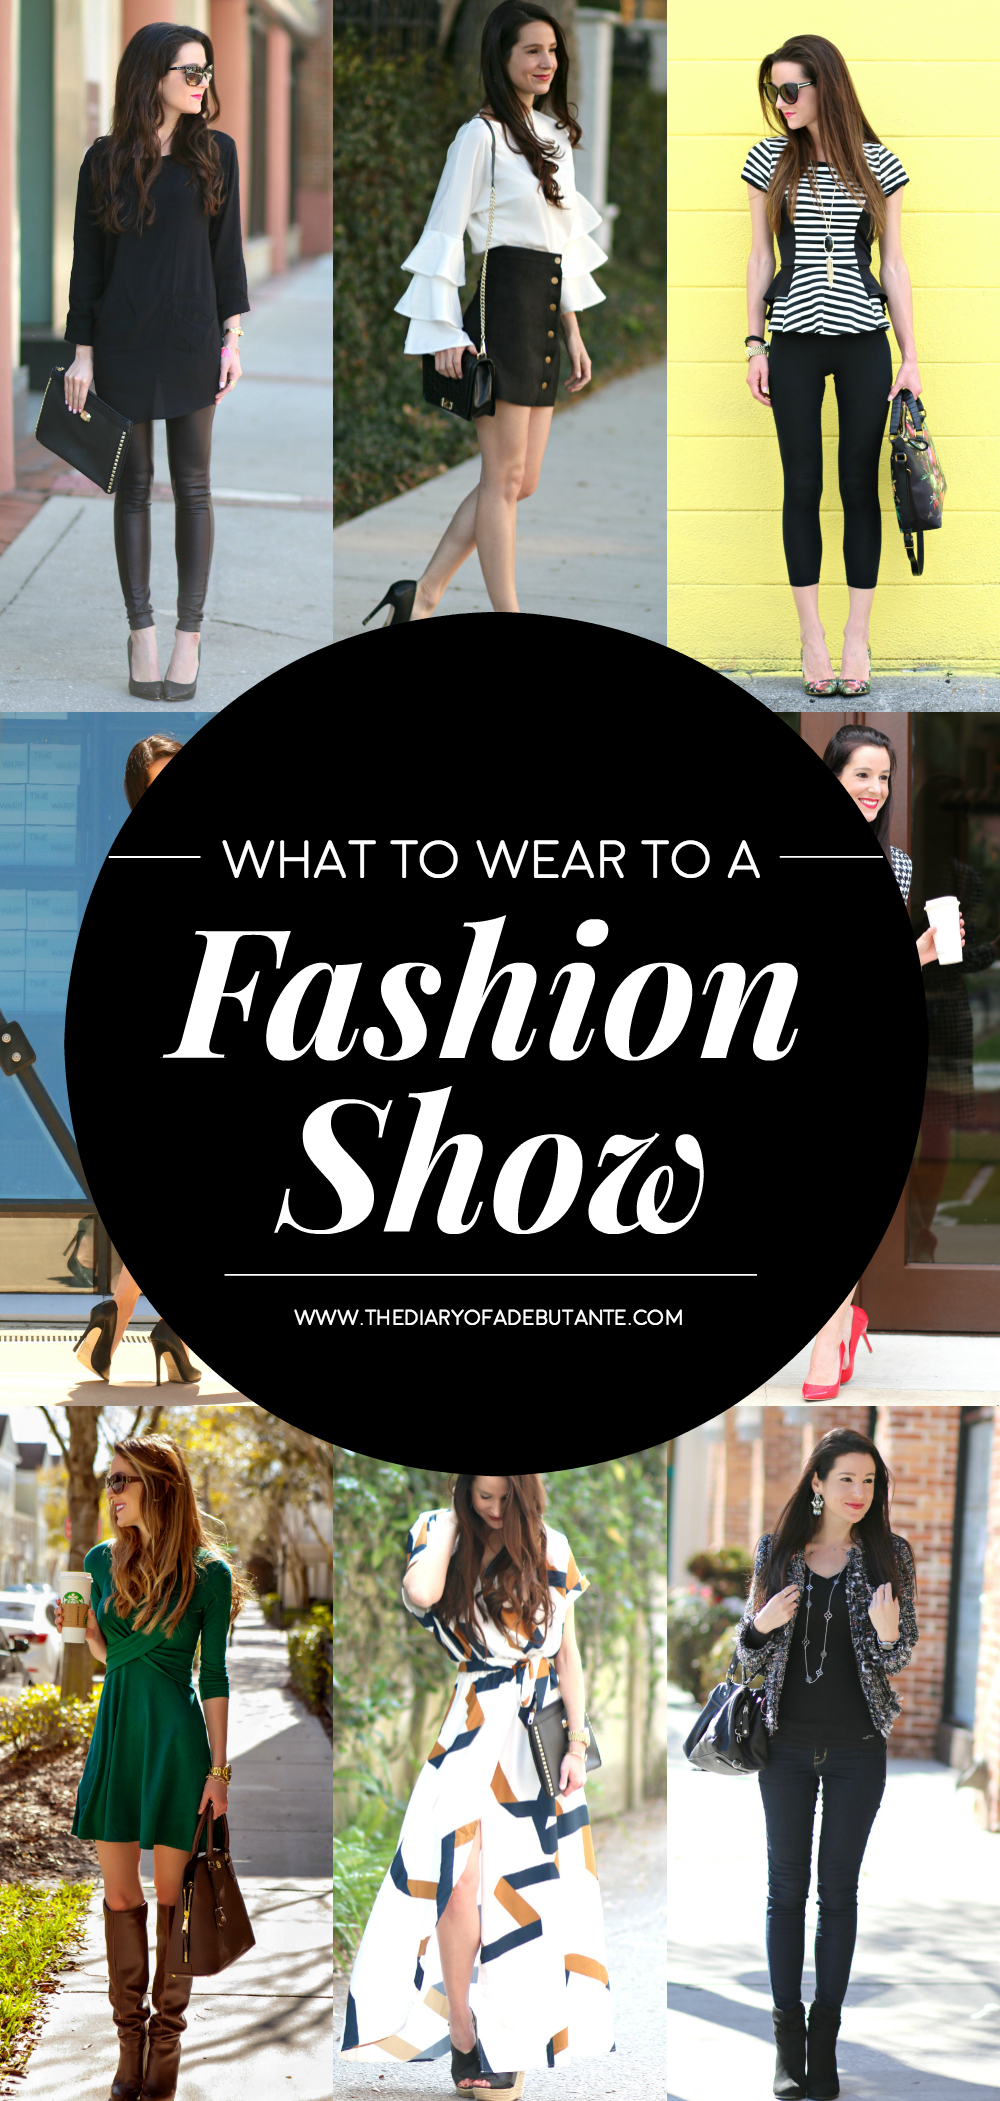 Heading to NYFW this September? If you're not sure what to wear to a fashion show, check out these helpful styling tips (including 10 outfit ideas that anybody can wear) by fashion blogger Stephanie Ziajka from Diary of a Debutante